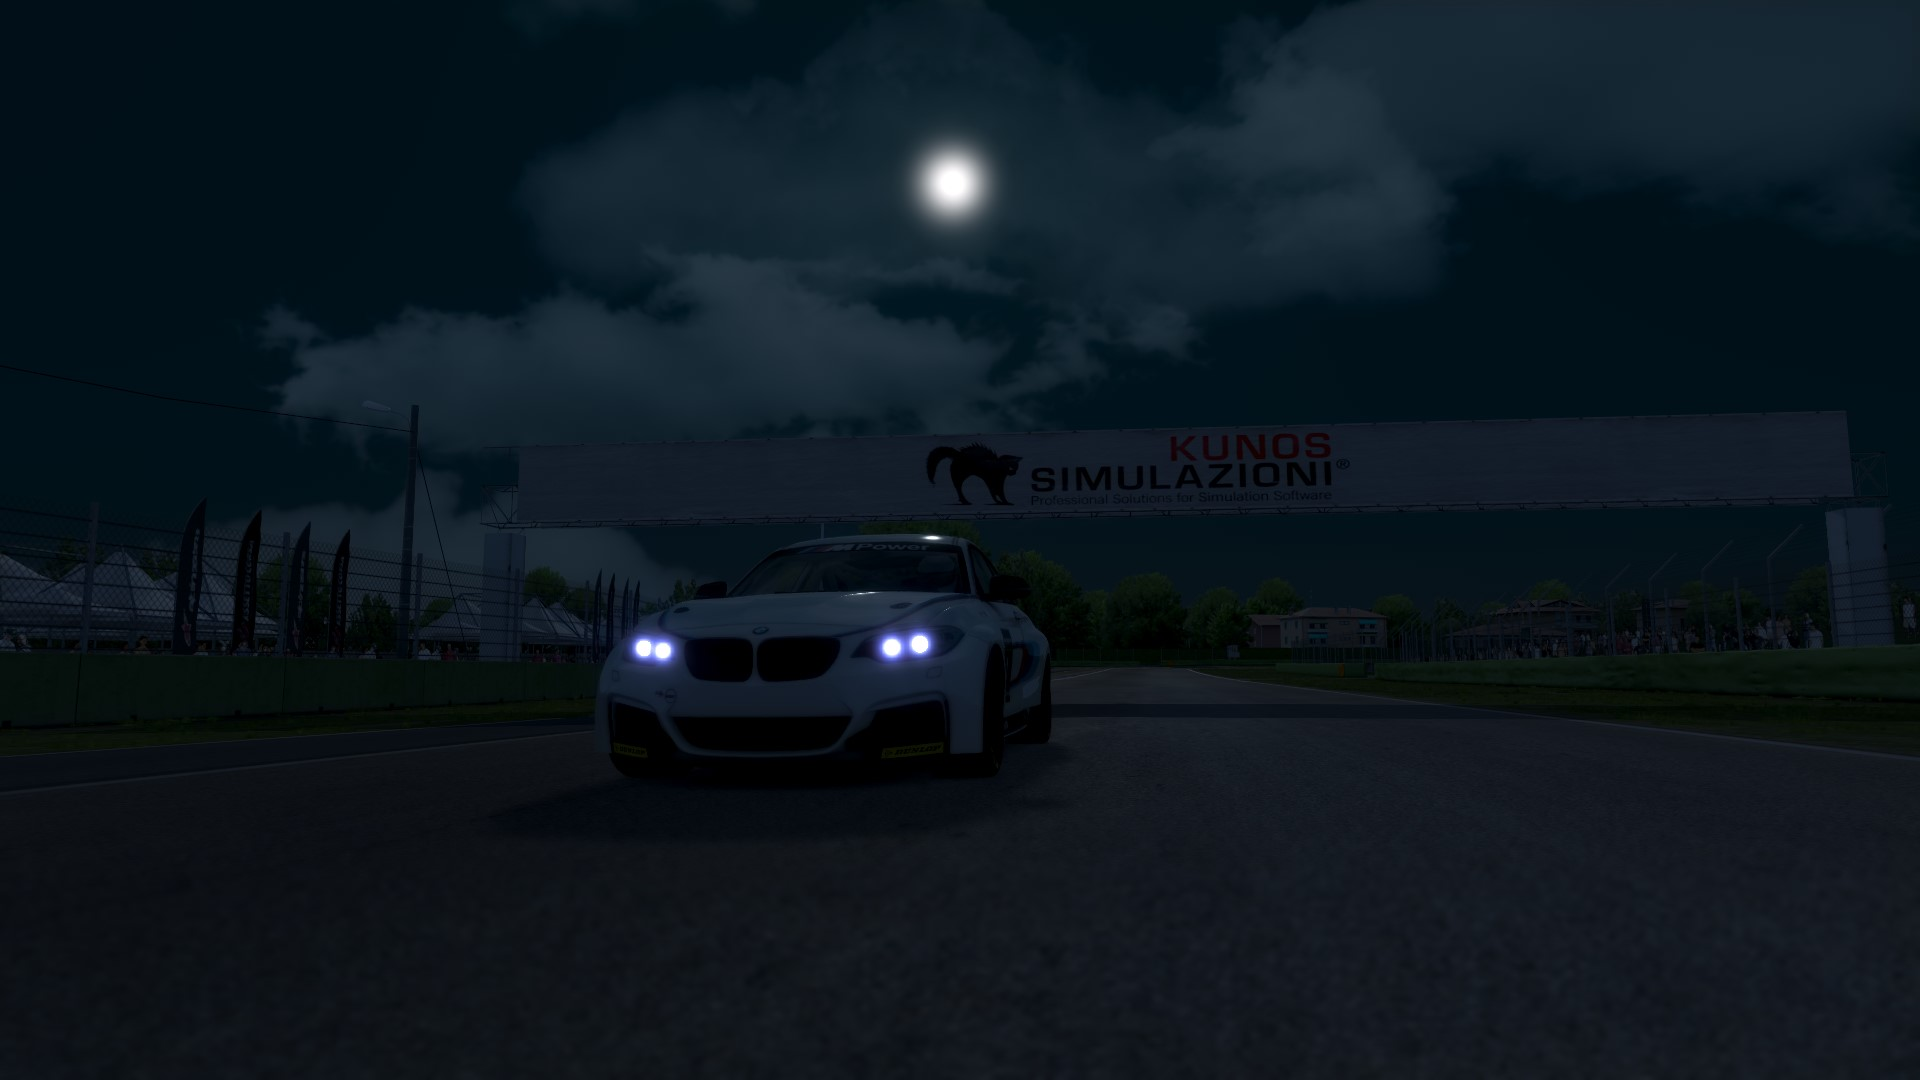 Screenshot_ks_bmw_m235i_racing_imola_29-4-115-20-7-58.jpg